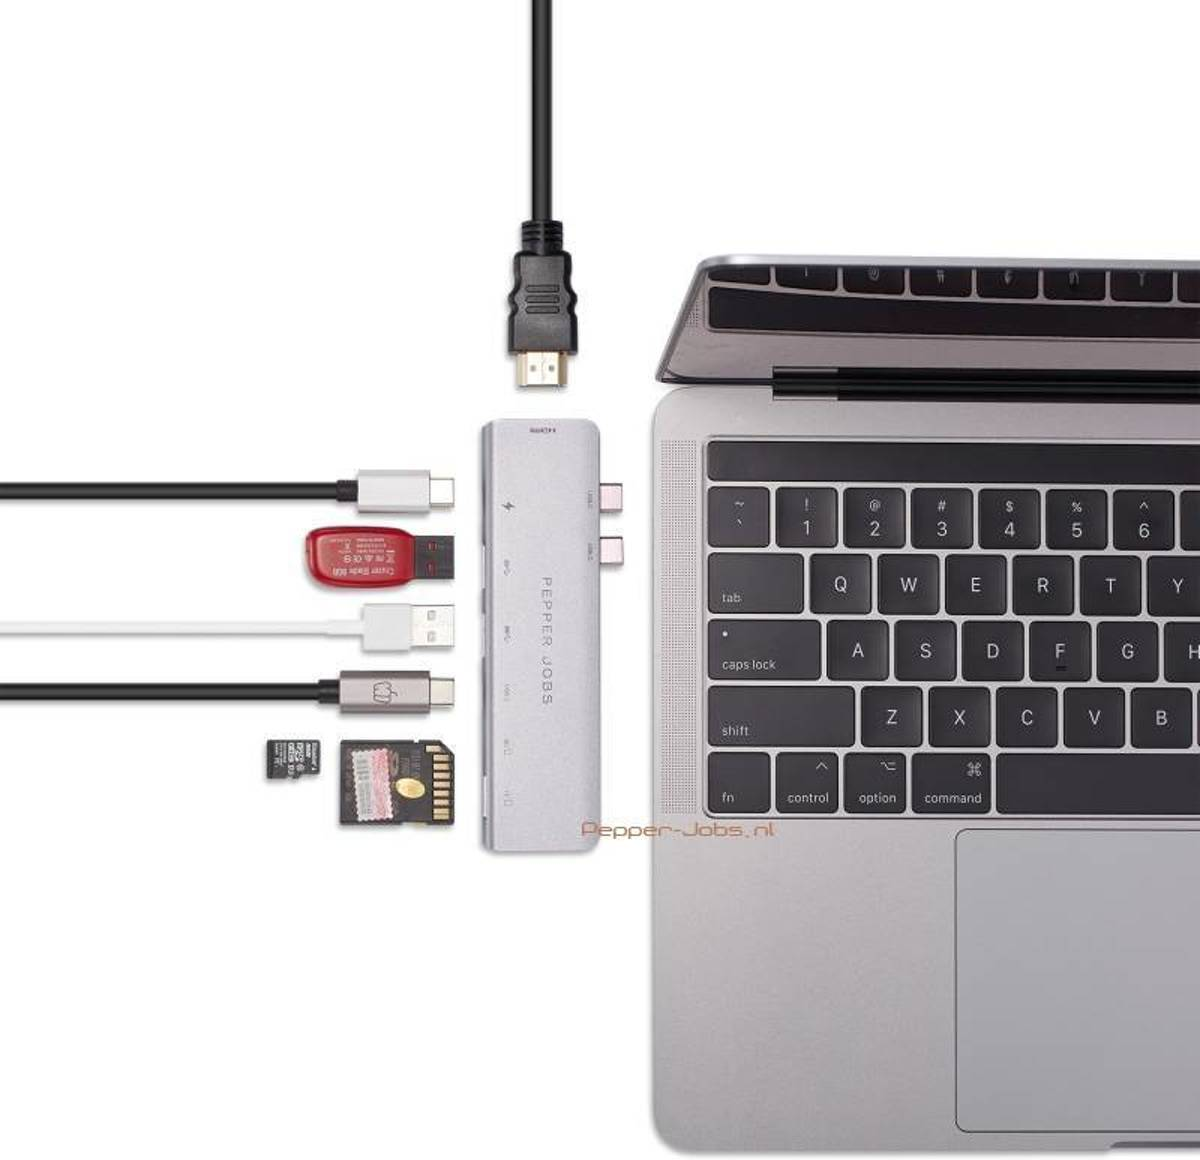 Pepper Jobs TCH-MBP7 Dual USB-C Multipoort hub voor MacBook Pro 13